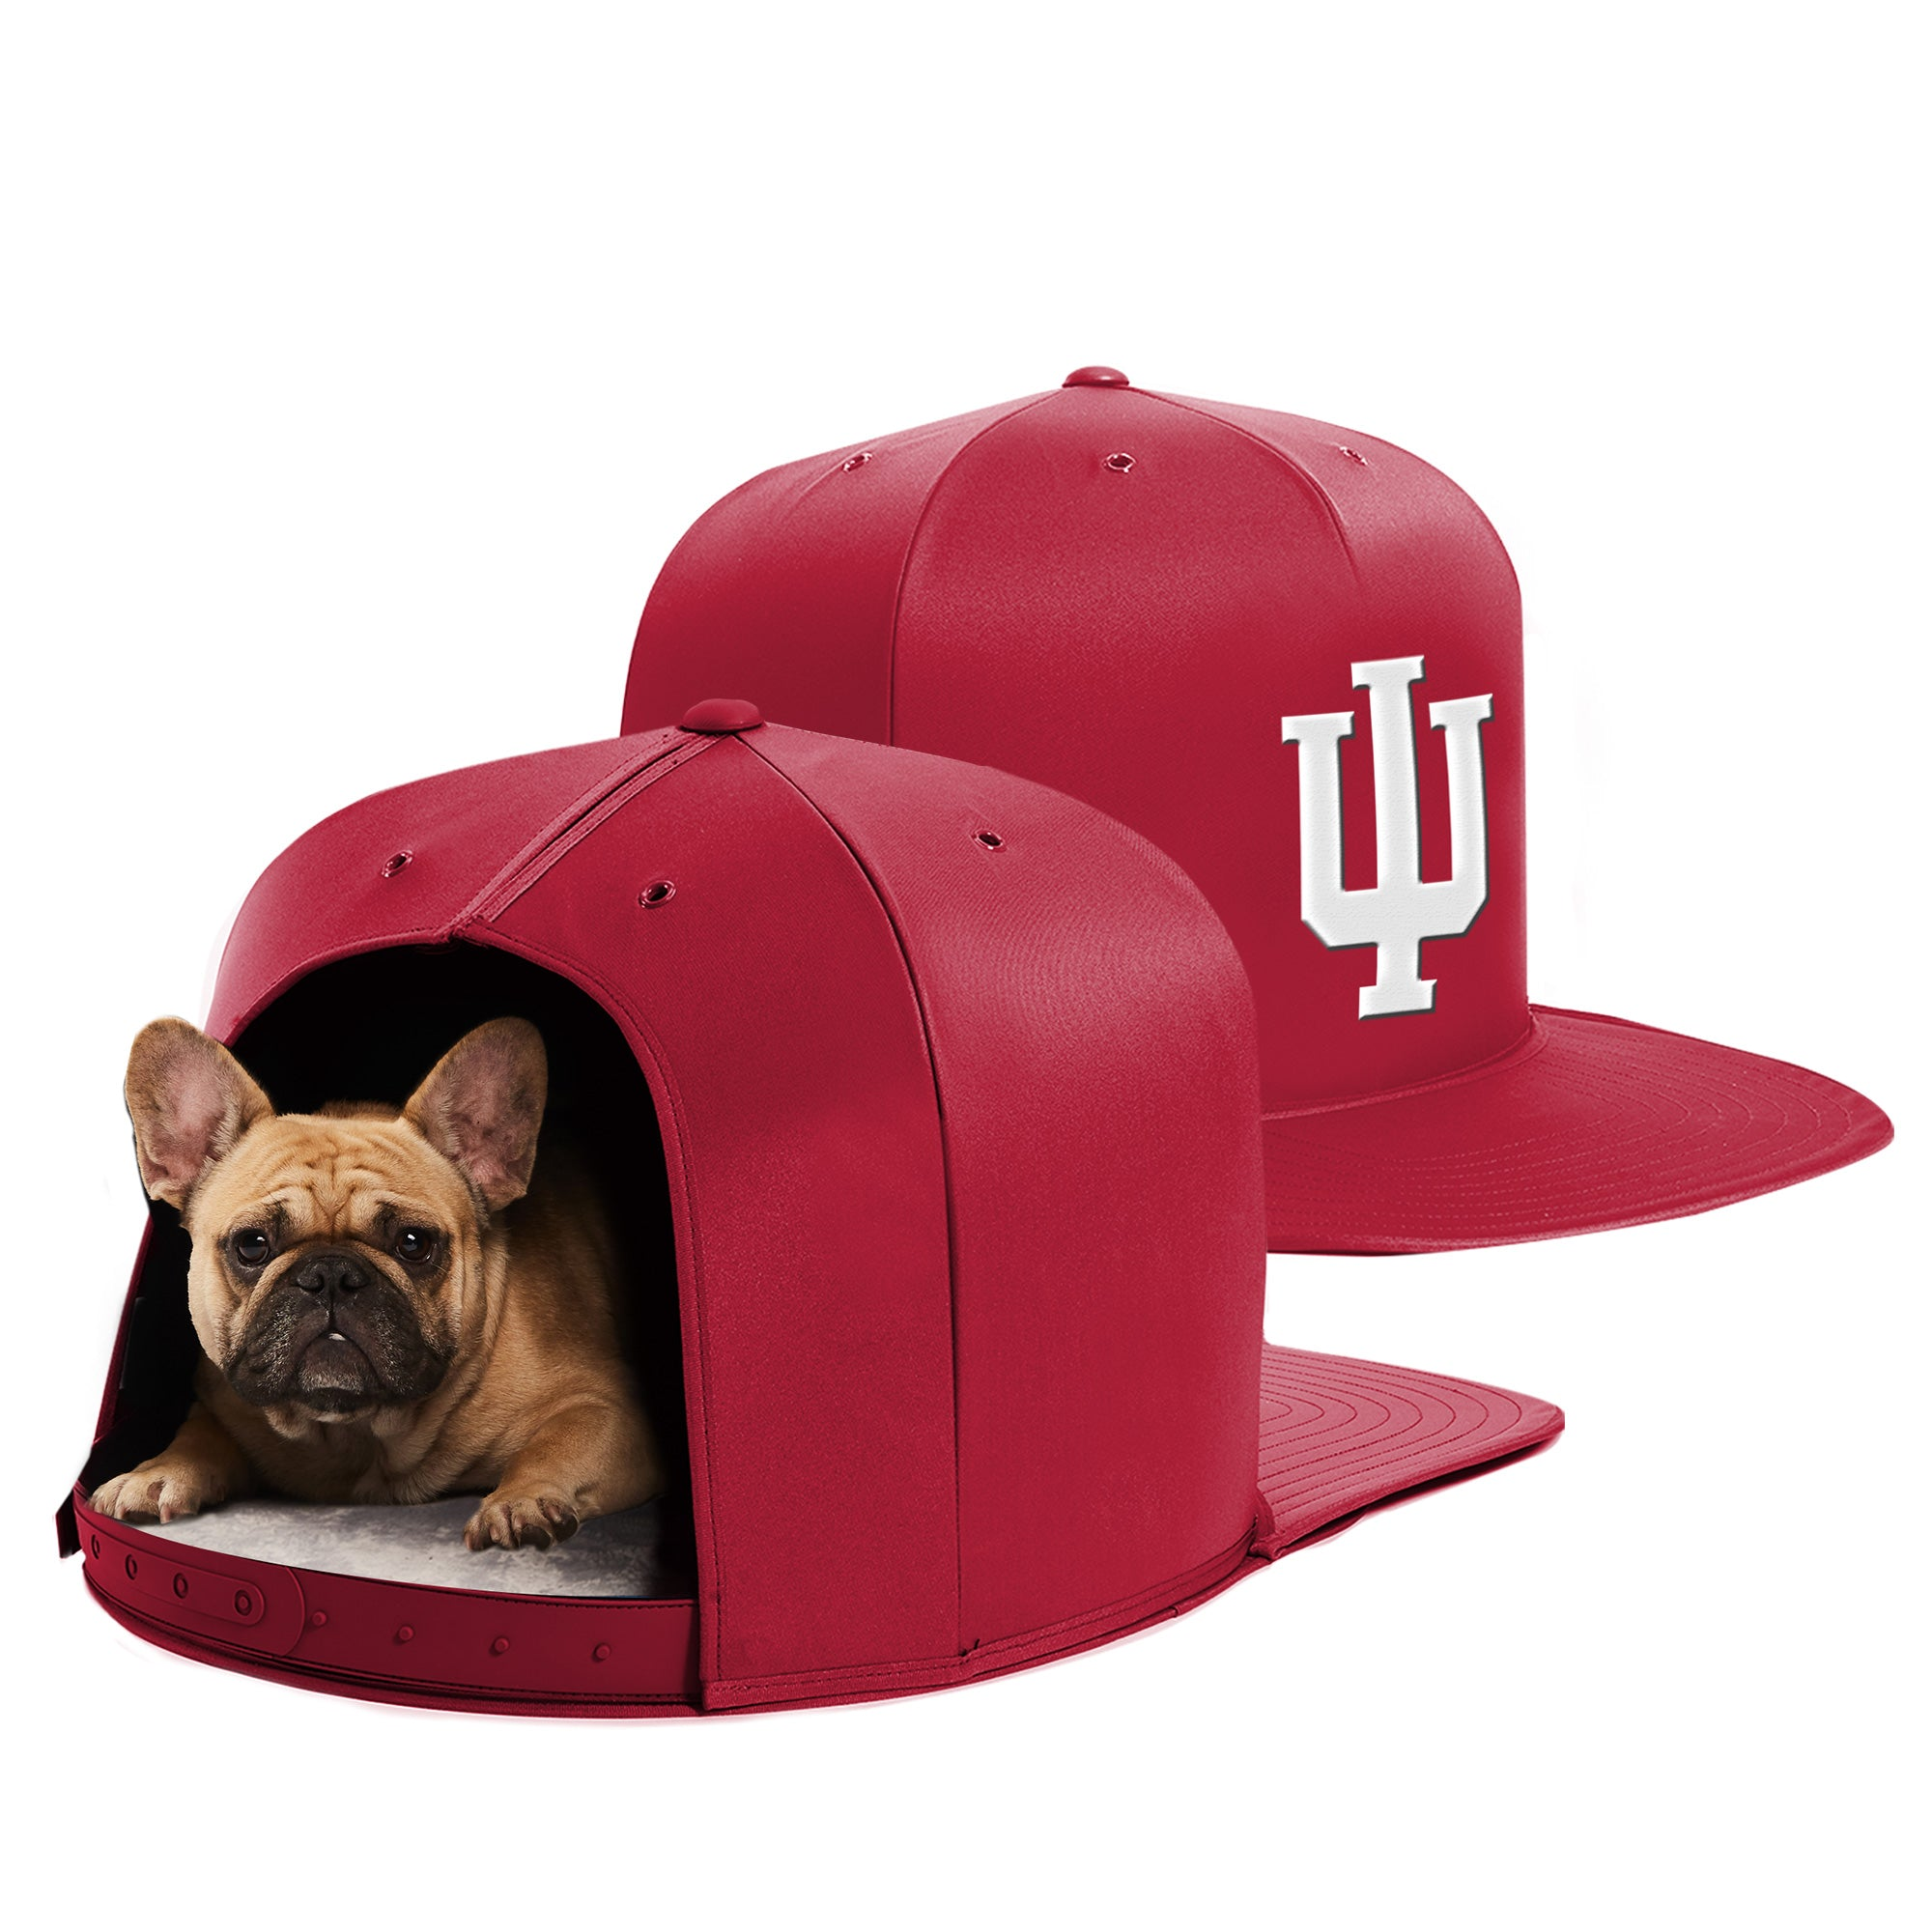 Nap Cap - Indiana University - Pet Bed